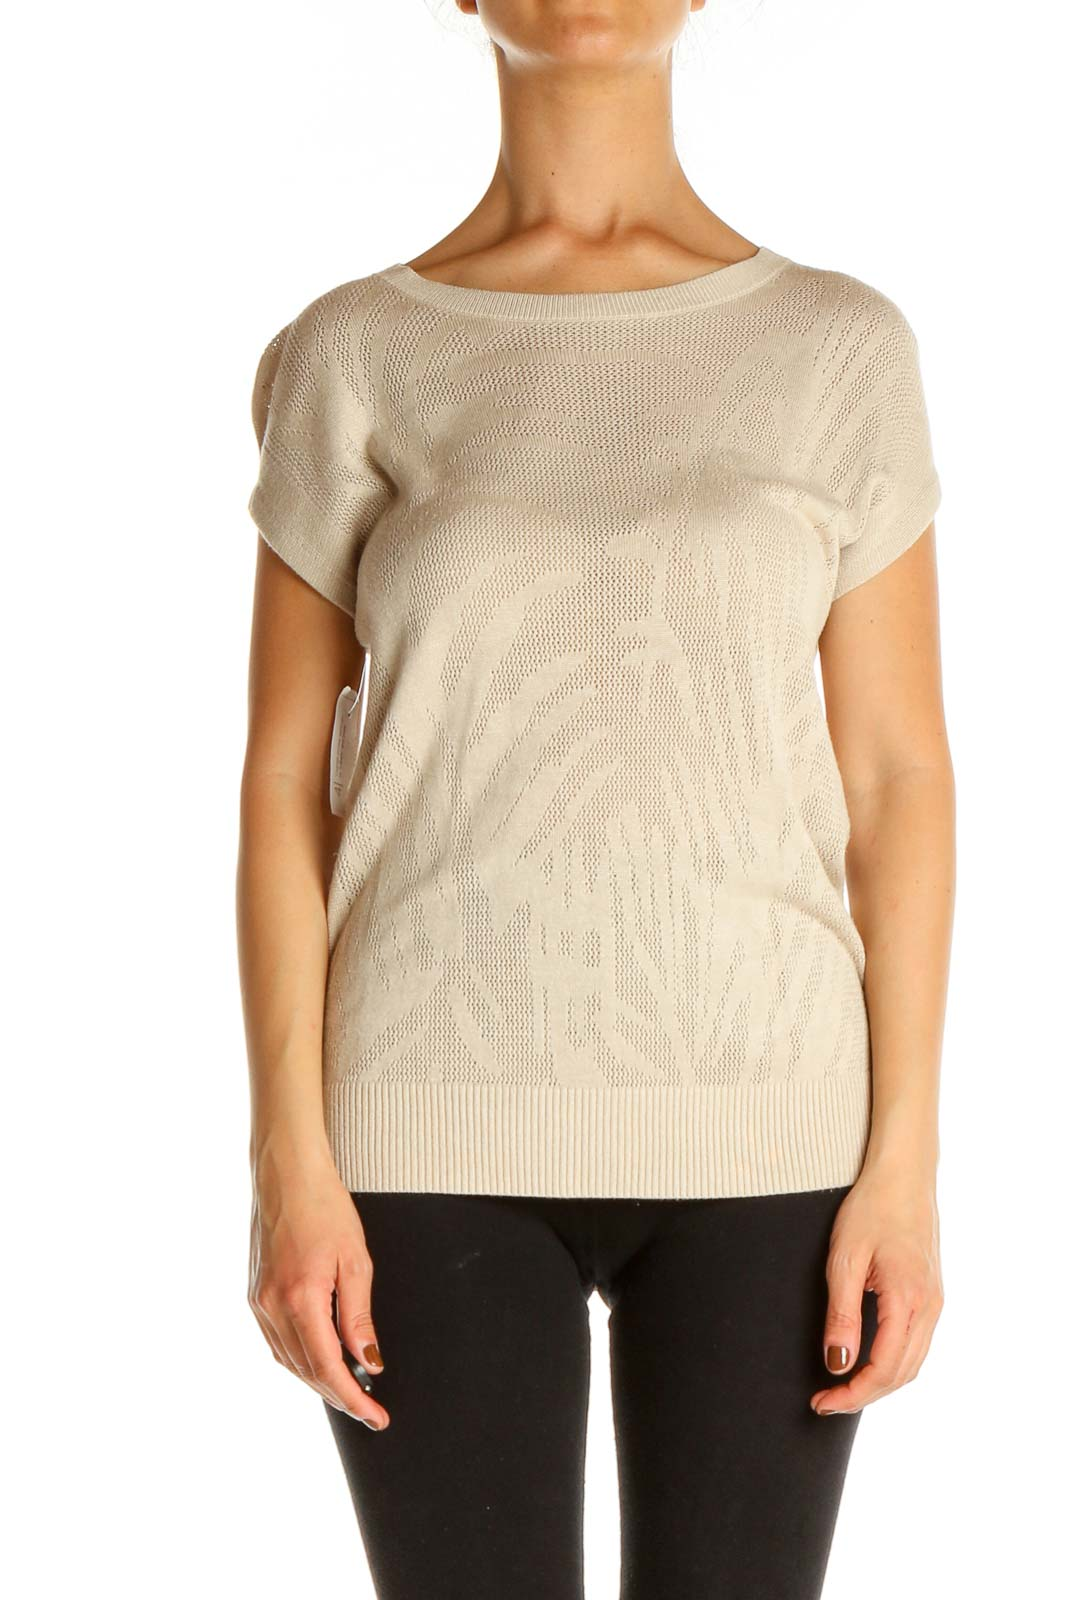 Beige Textured Casual Blouse Front